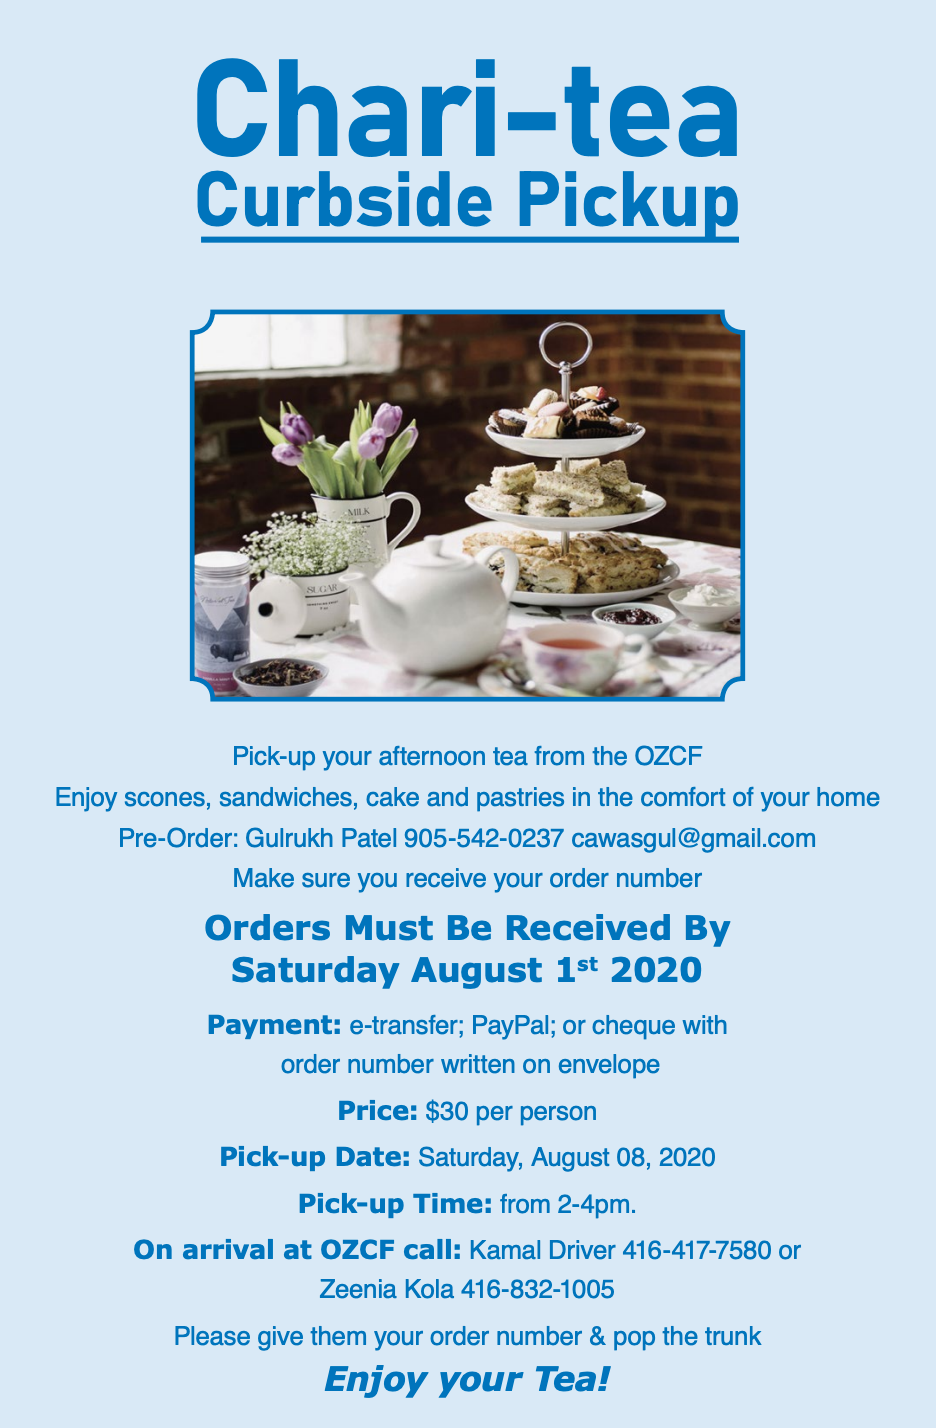 chari-tea fundraiser from the zoroastrian foundation